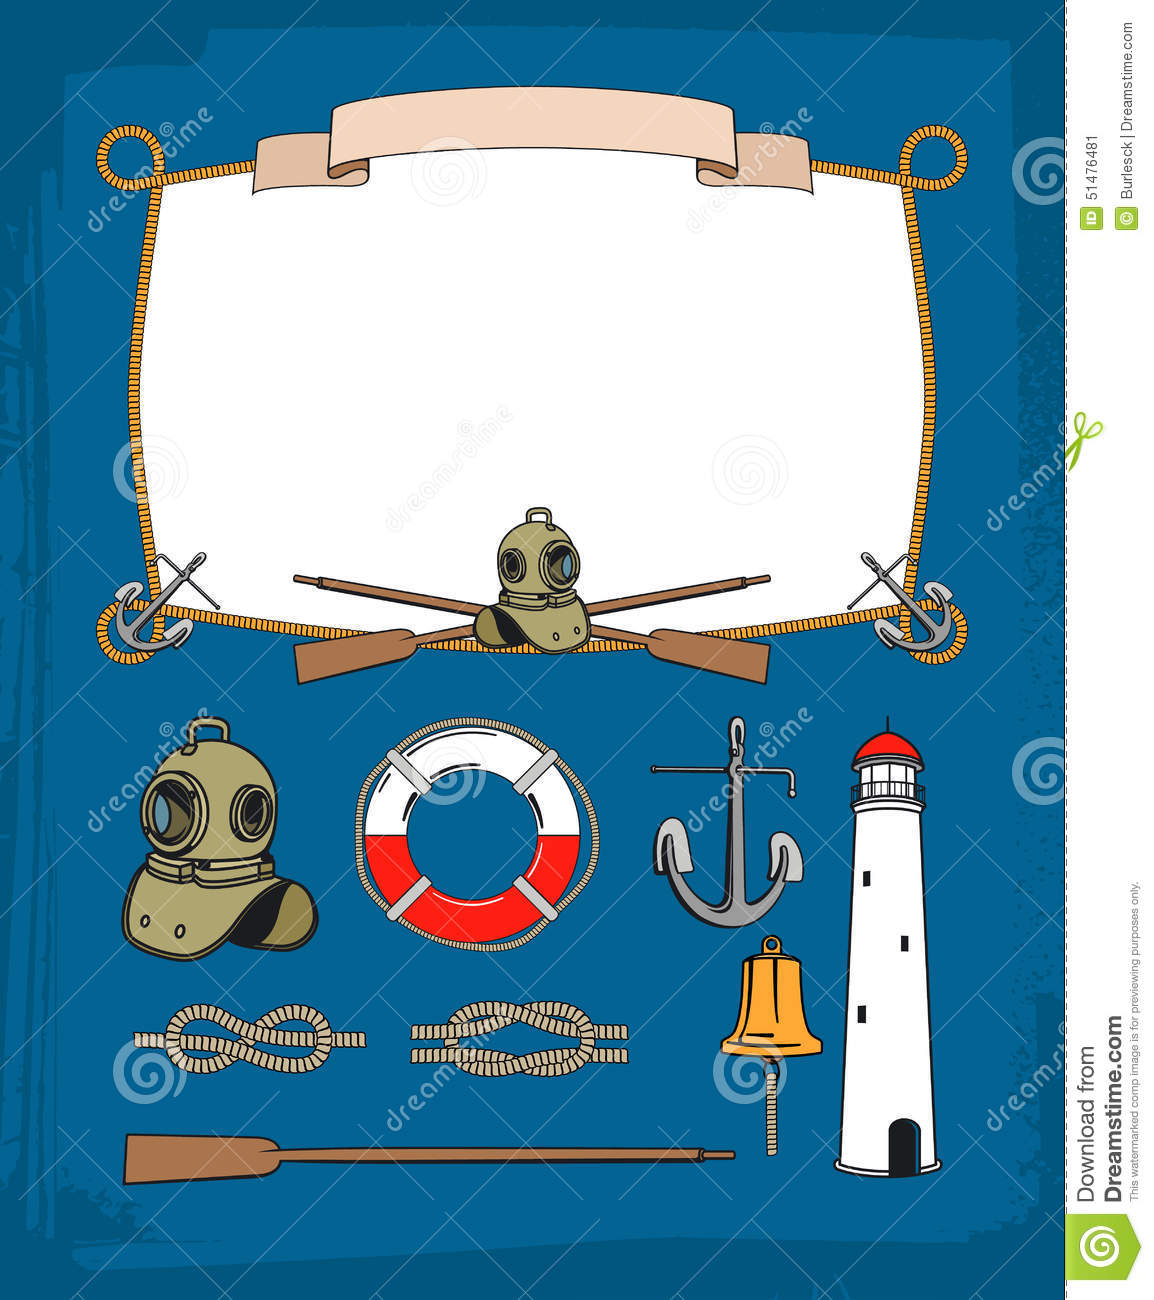 themes and motifs in the diving bell and the butterfly Bador almehmadi prof kuo reth 106 12/04/13 final draft rhetorical analysis  of the diving bell and the butterfly in december 1995, 43-year-old.